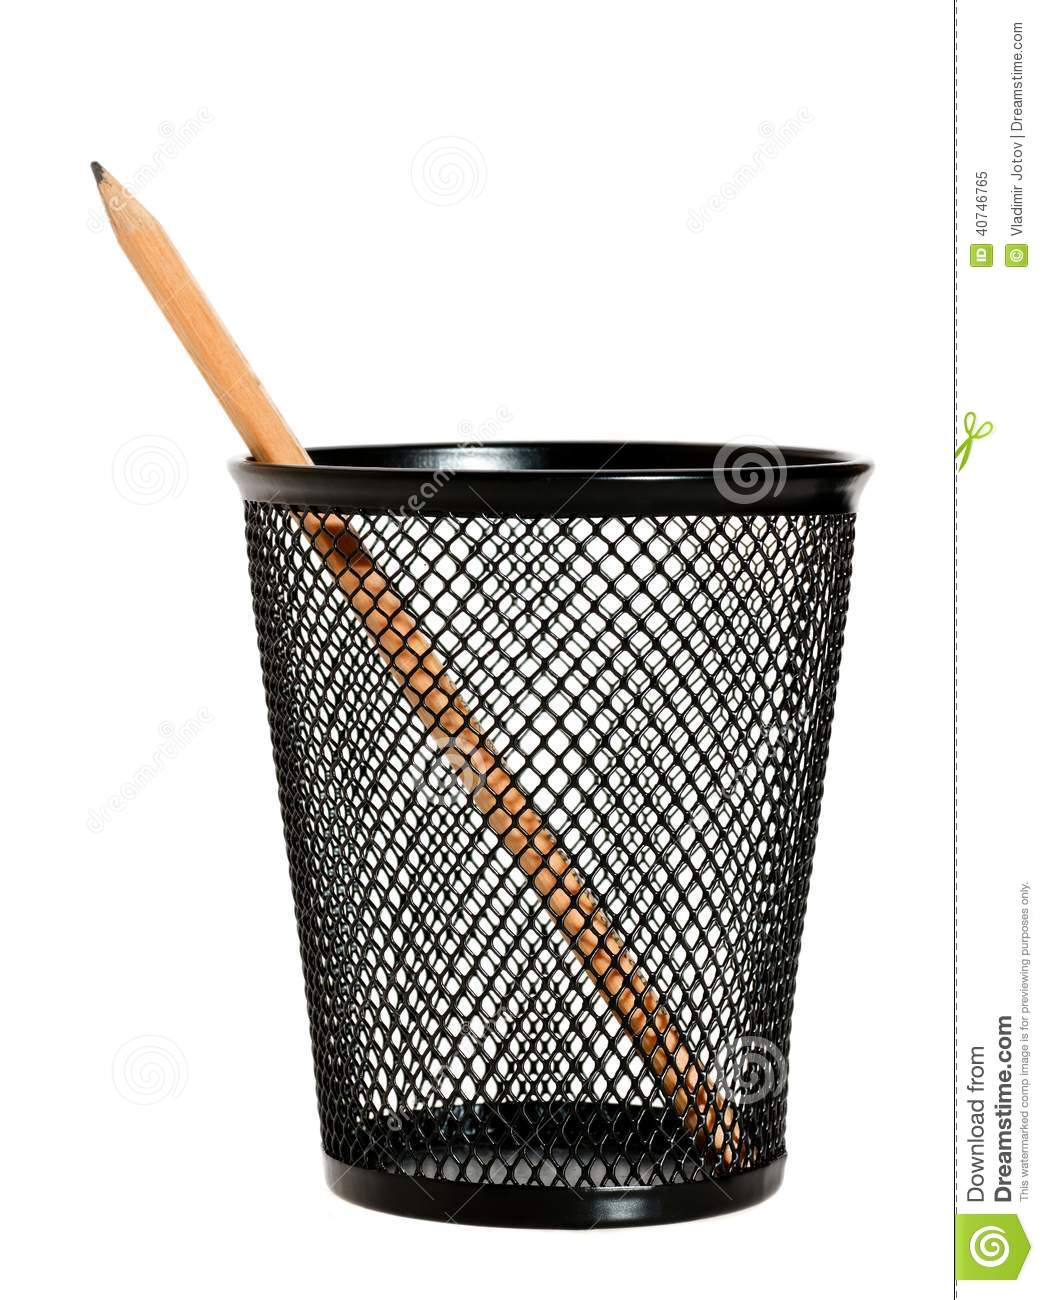 One Pencil In A Wire Mesh Pencil Holder. Stock Image - Image of ...